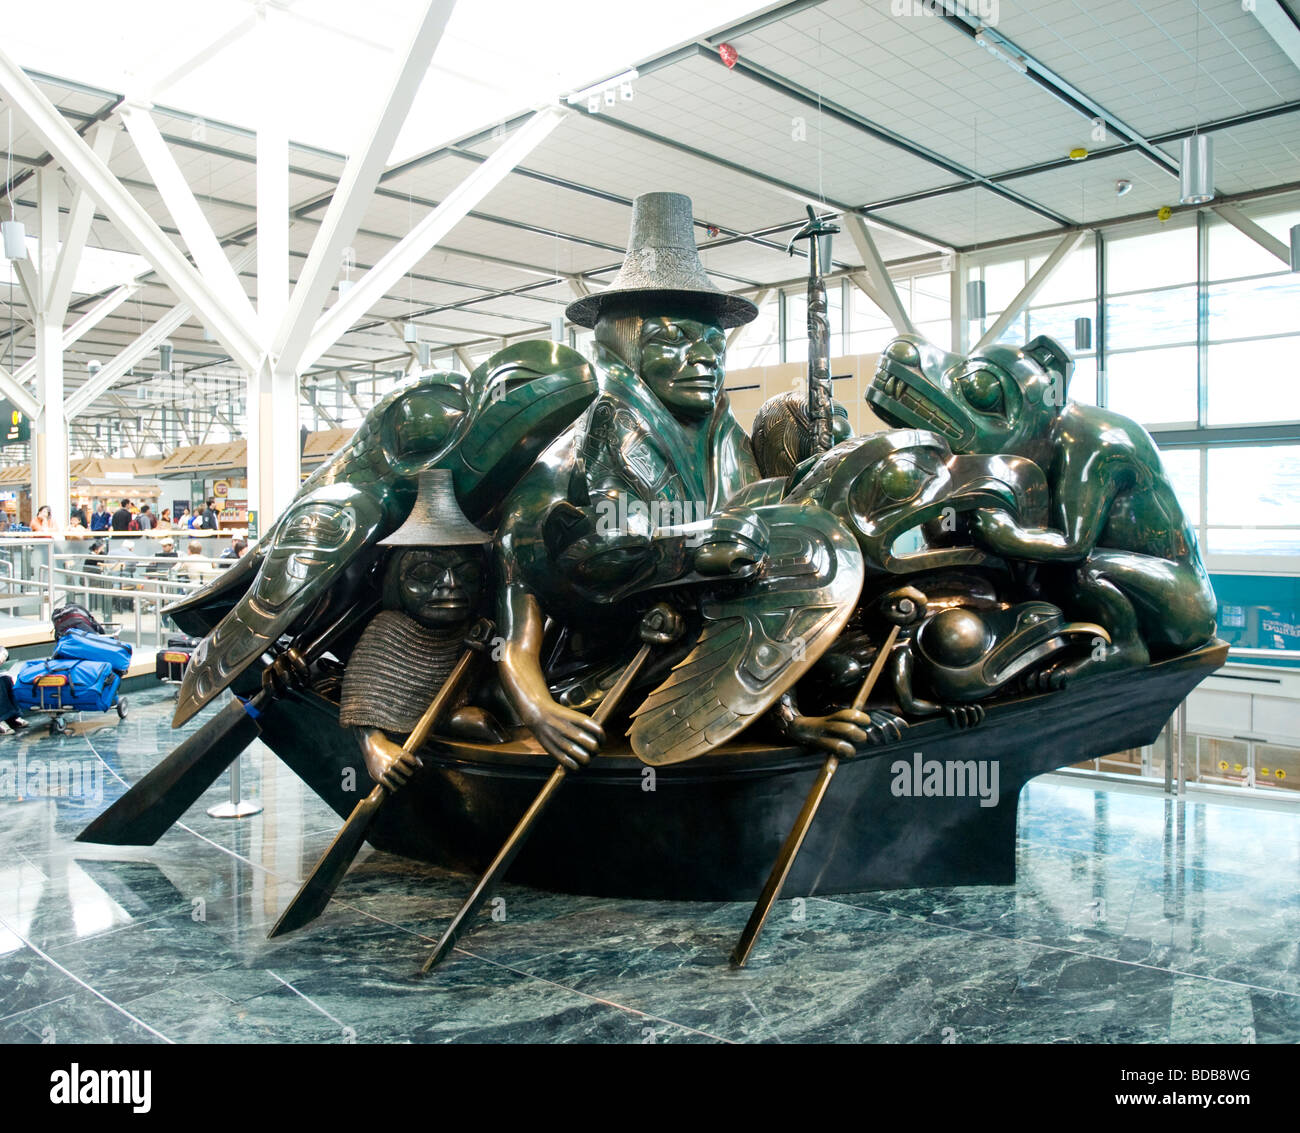 The Bill Reid sculpture, The Spirit of Haida Gwaii, at the Vancouver International Airport.  Vancouver BC, Canada. - Stock Image